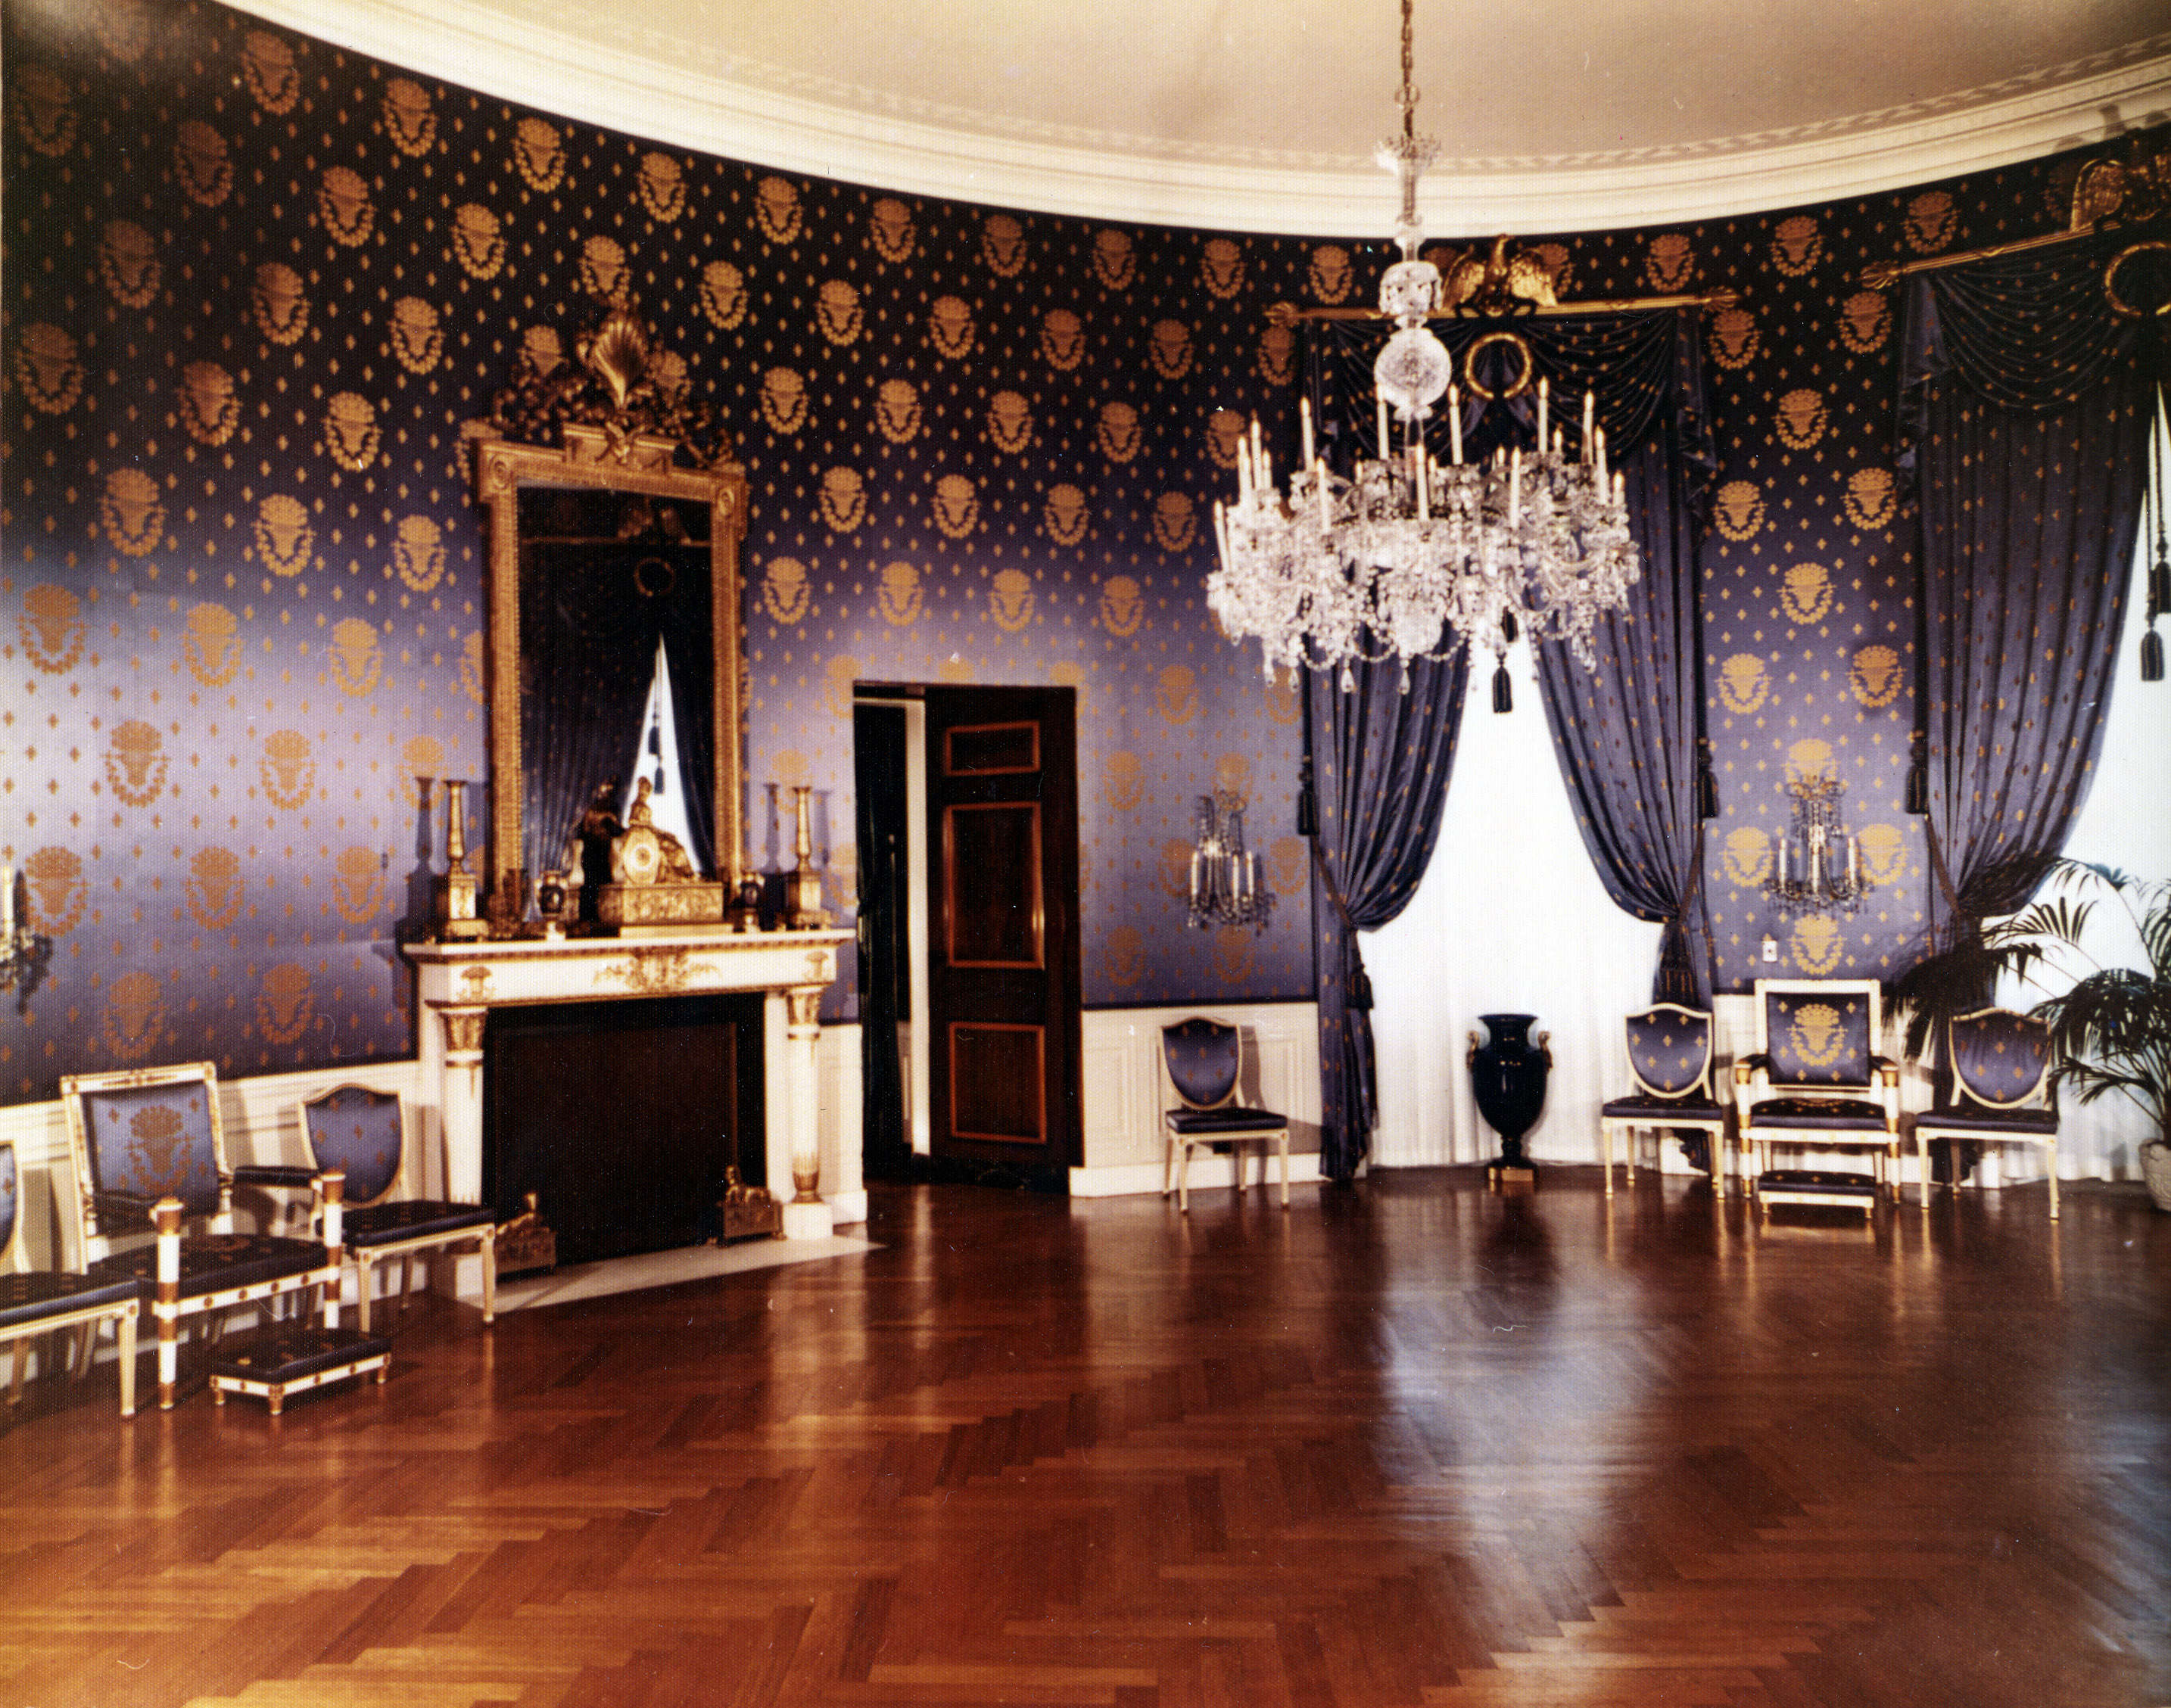 File:Blue Room At The White House, Post Renovation 07 15